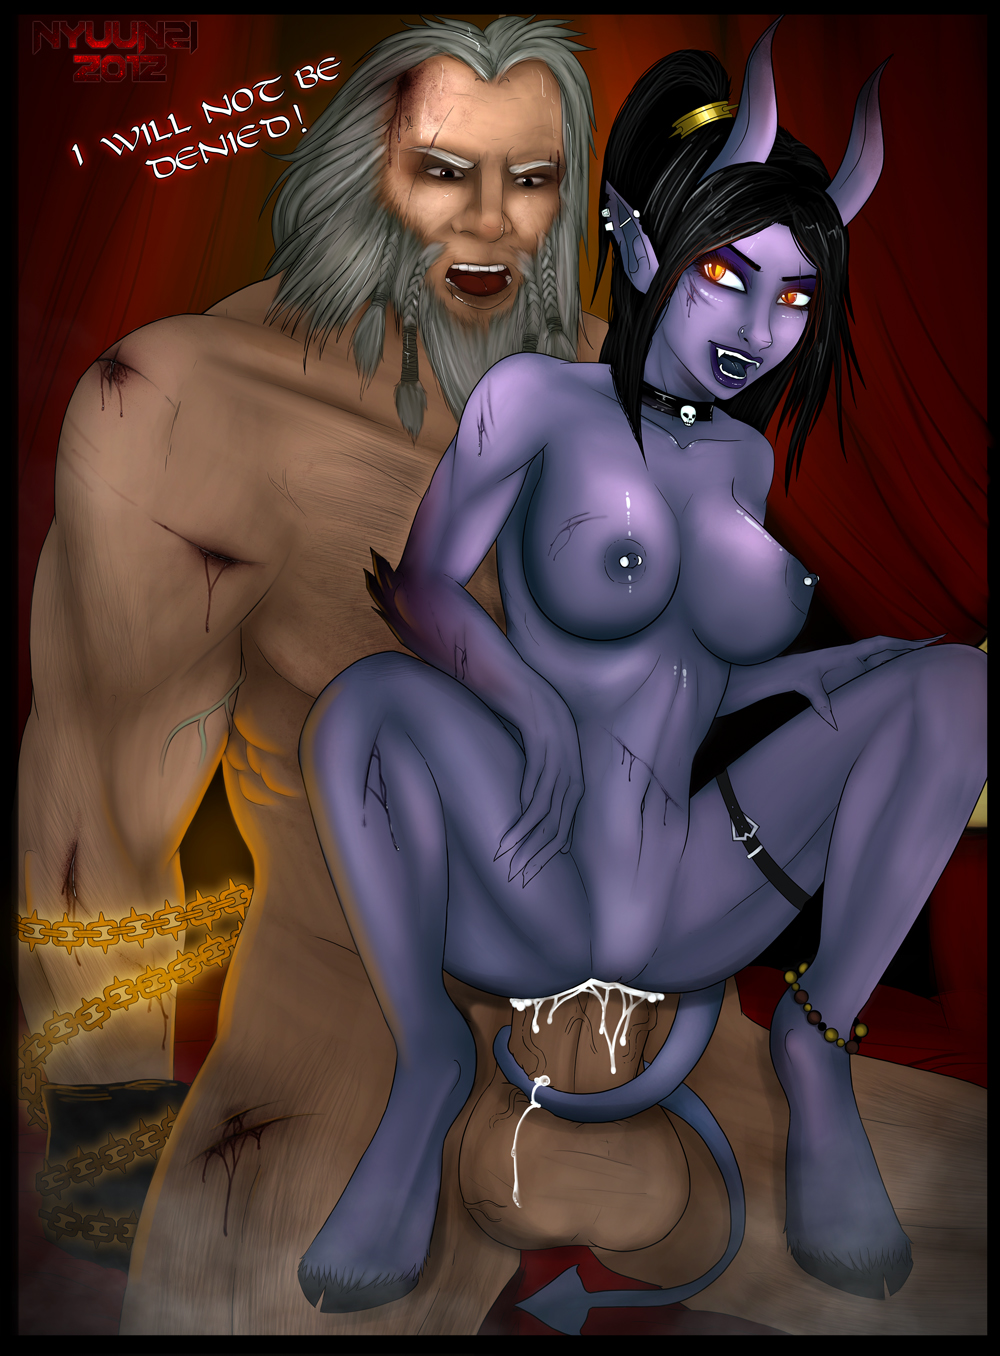 Hot girls desnuda fnaf sex Sexy Naked Fnaf Hentai Picture